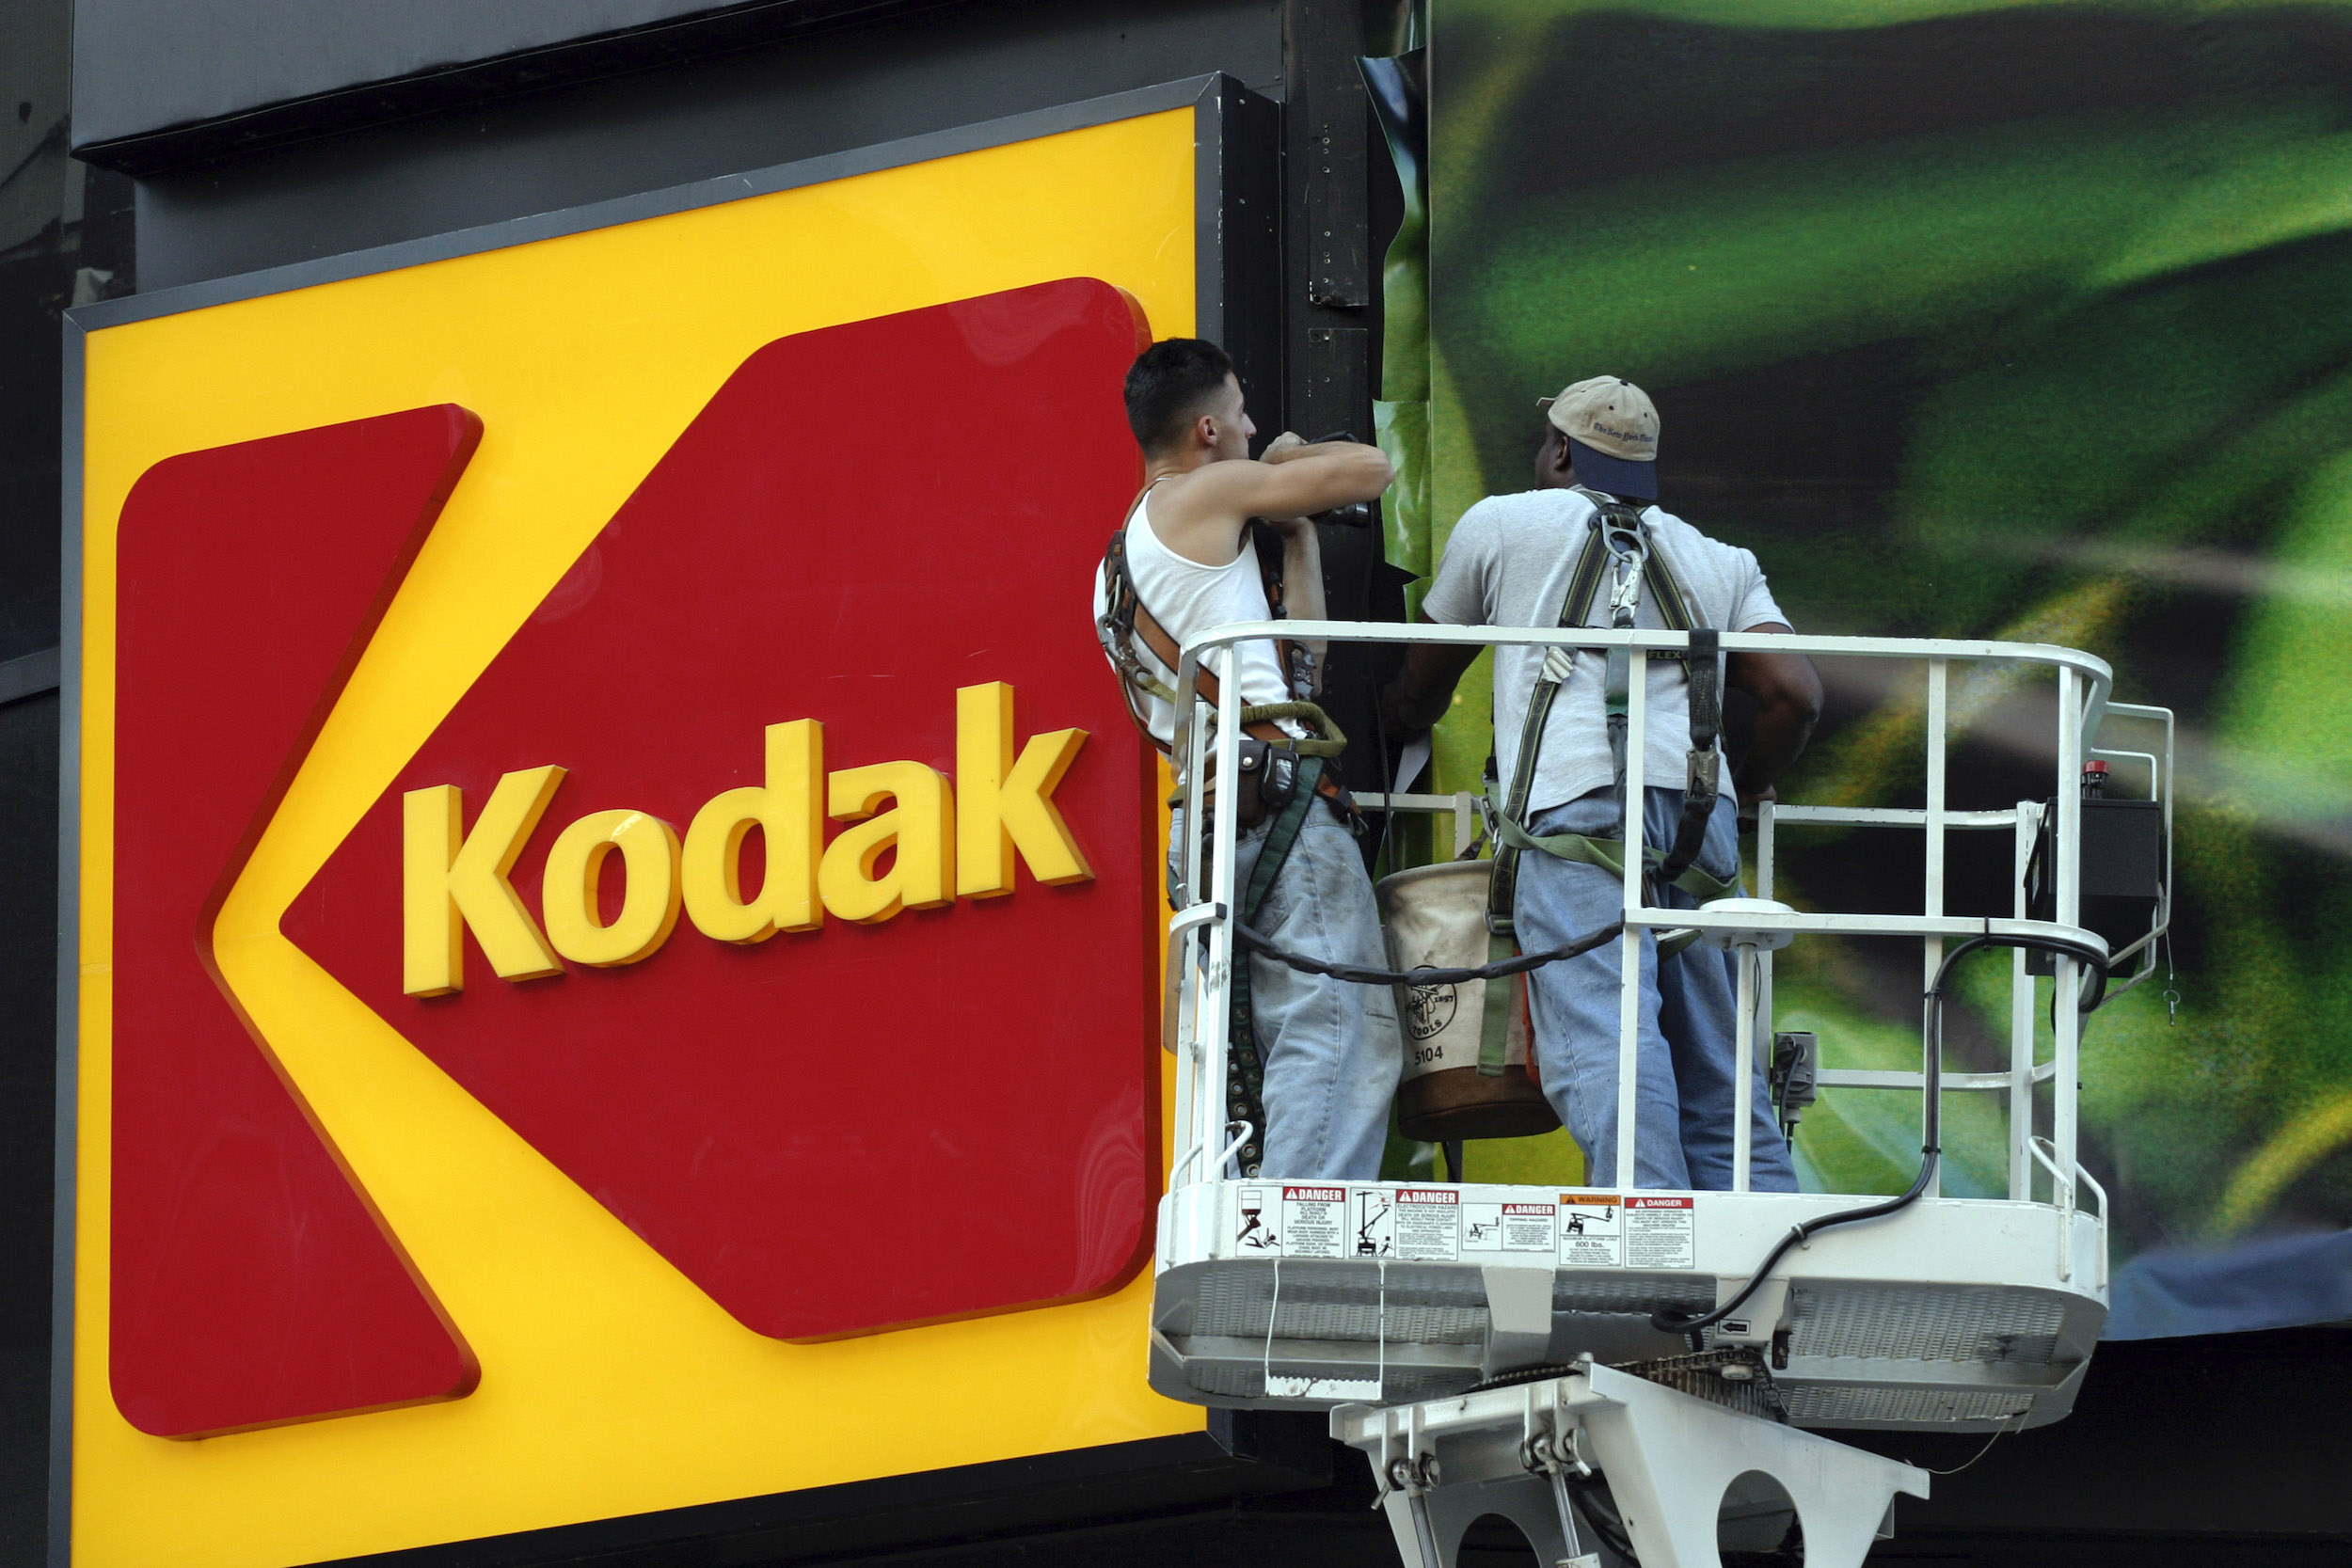 Workers stand near the KODAK billboard at Times Square, New York City.